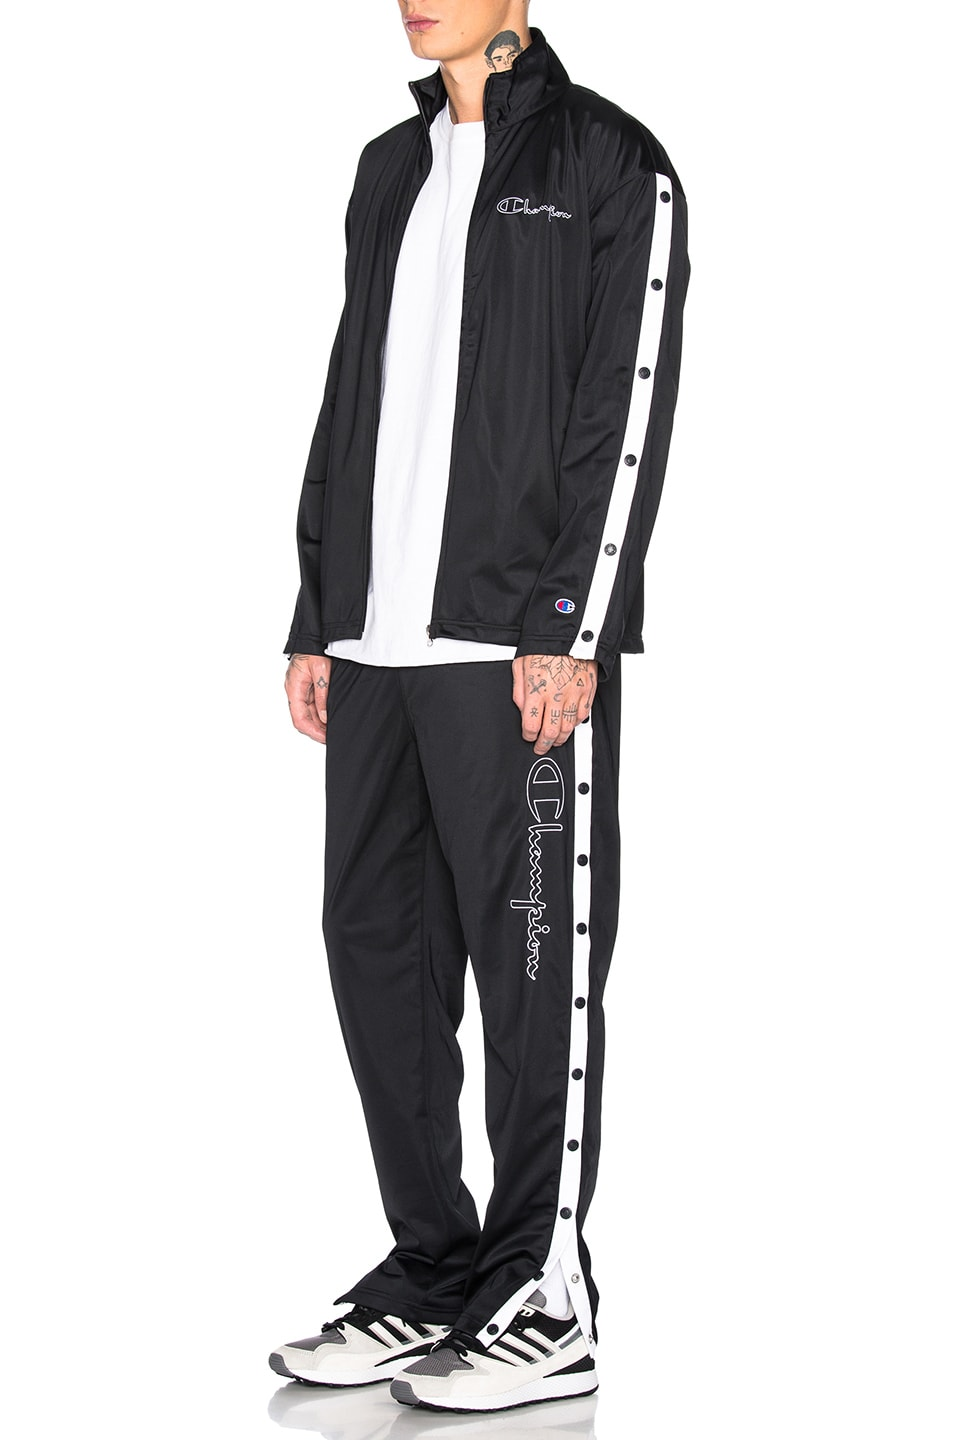 Image 5 of Champion Reverse Weave Champion Full Zip Jacket in Black & White